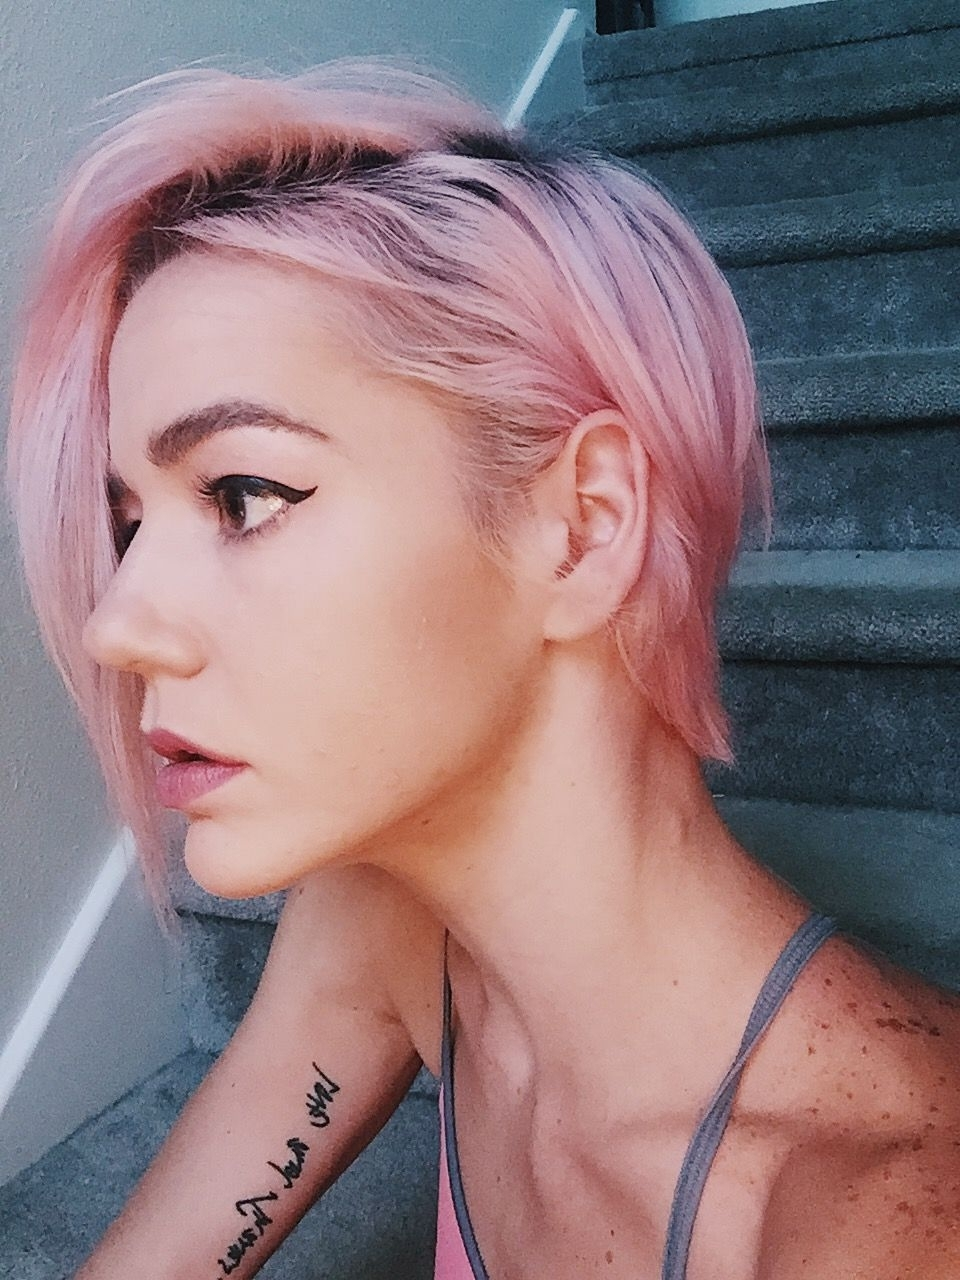 Short Hair, Pixie Hairstyle, Pastel Pink, Makeup, Cat Eye, Winged Throughout Most Recent Pink Short Pixie Hairstyles (View 2 of 15)